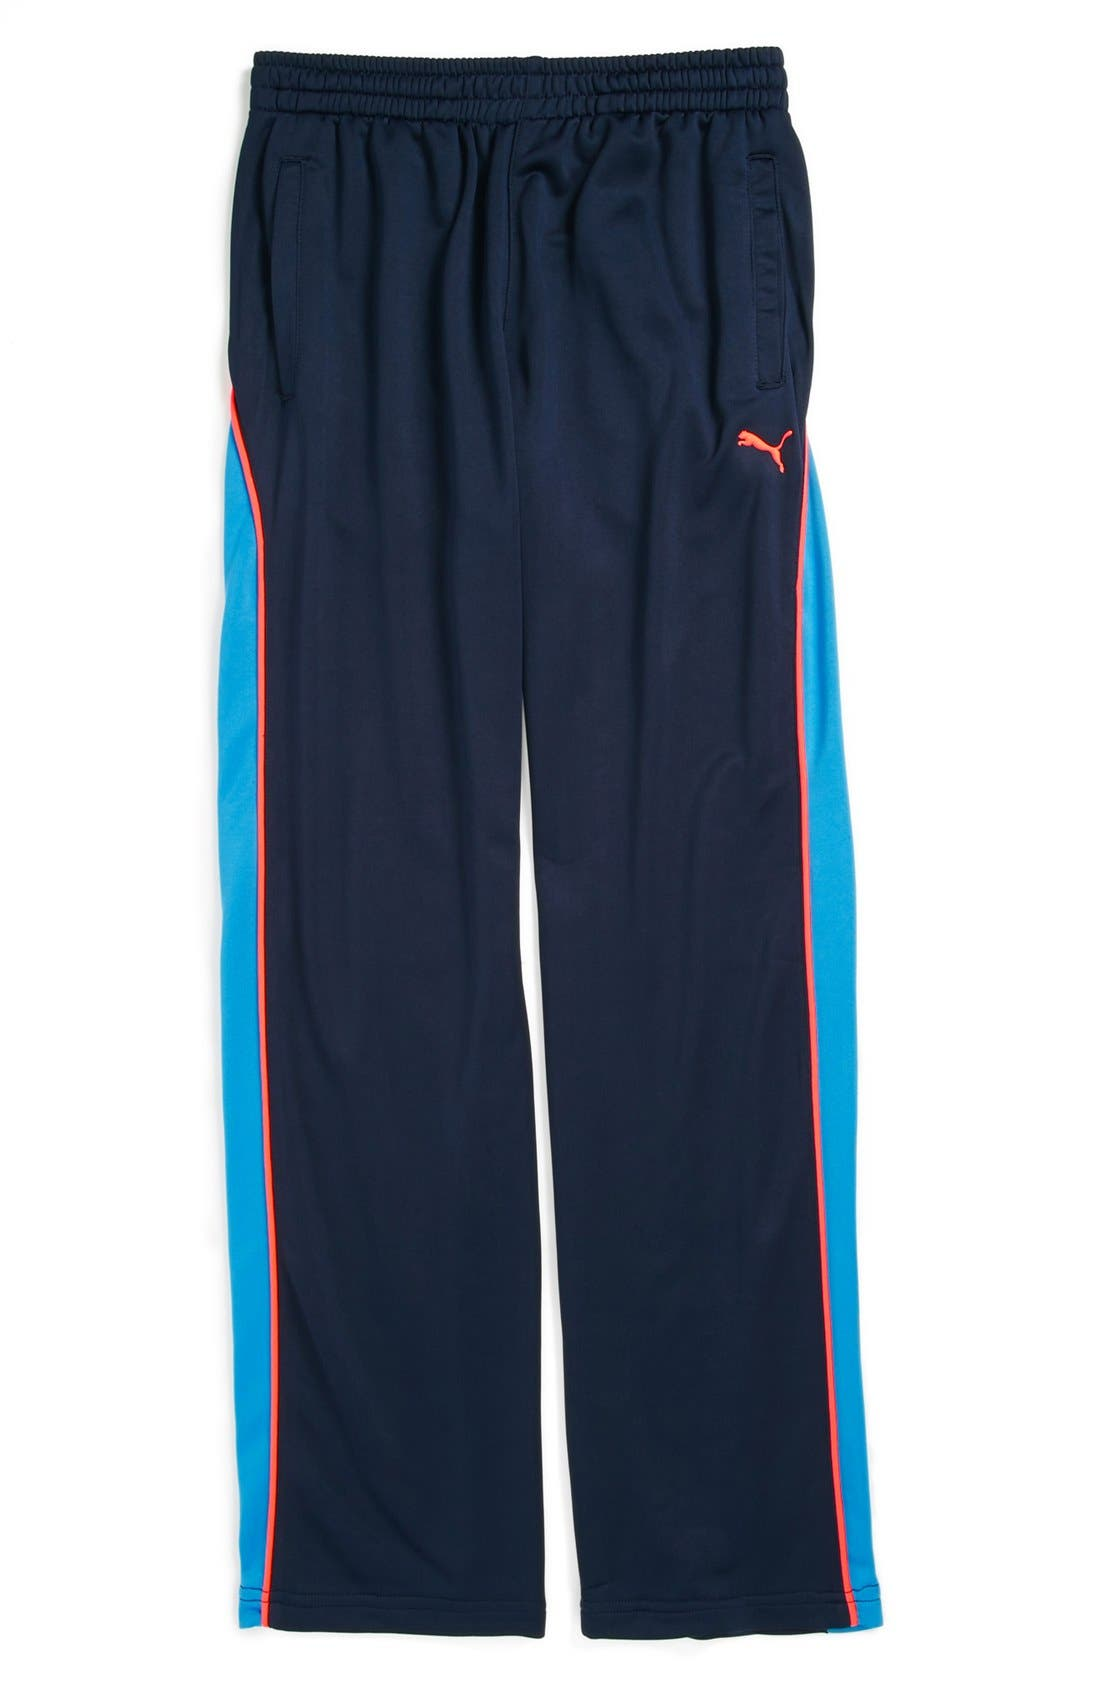 Main Image - PUMA 'Ability' Track Pants (Big Boys)